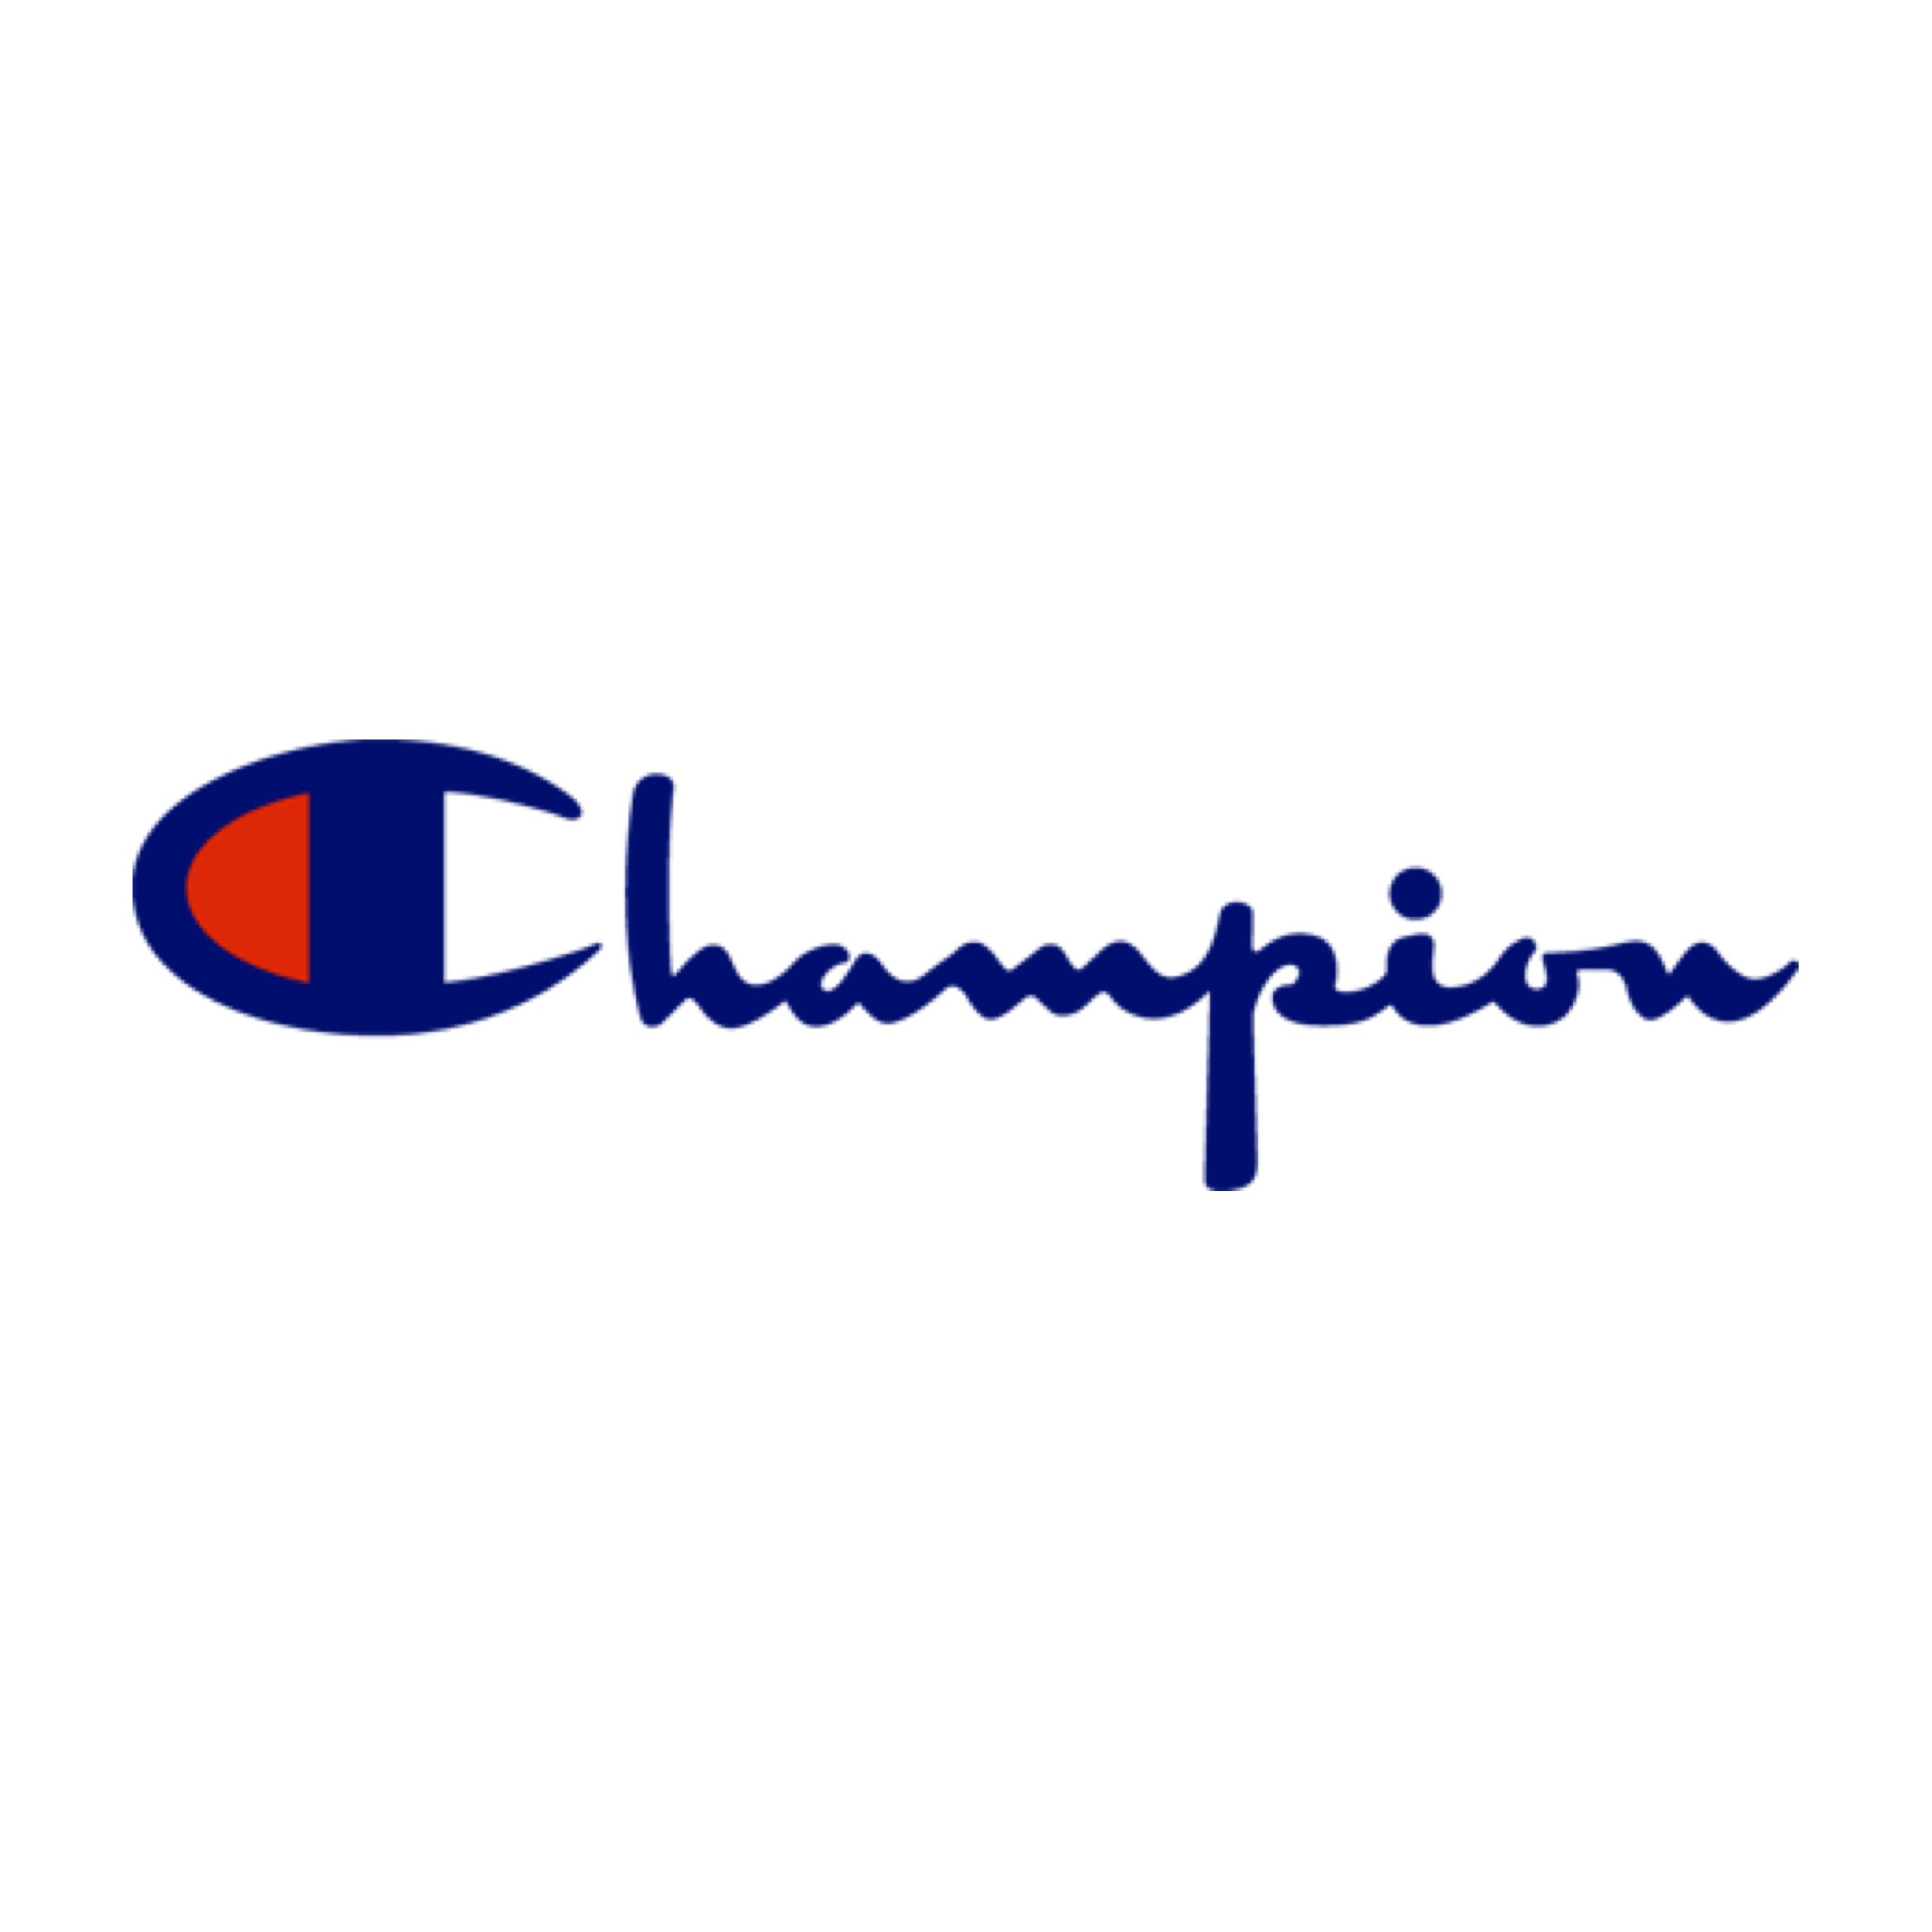 Champion Logo Wallpapers Wallpaper Cave